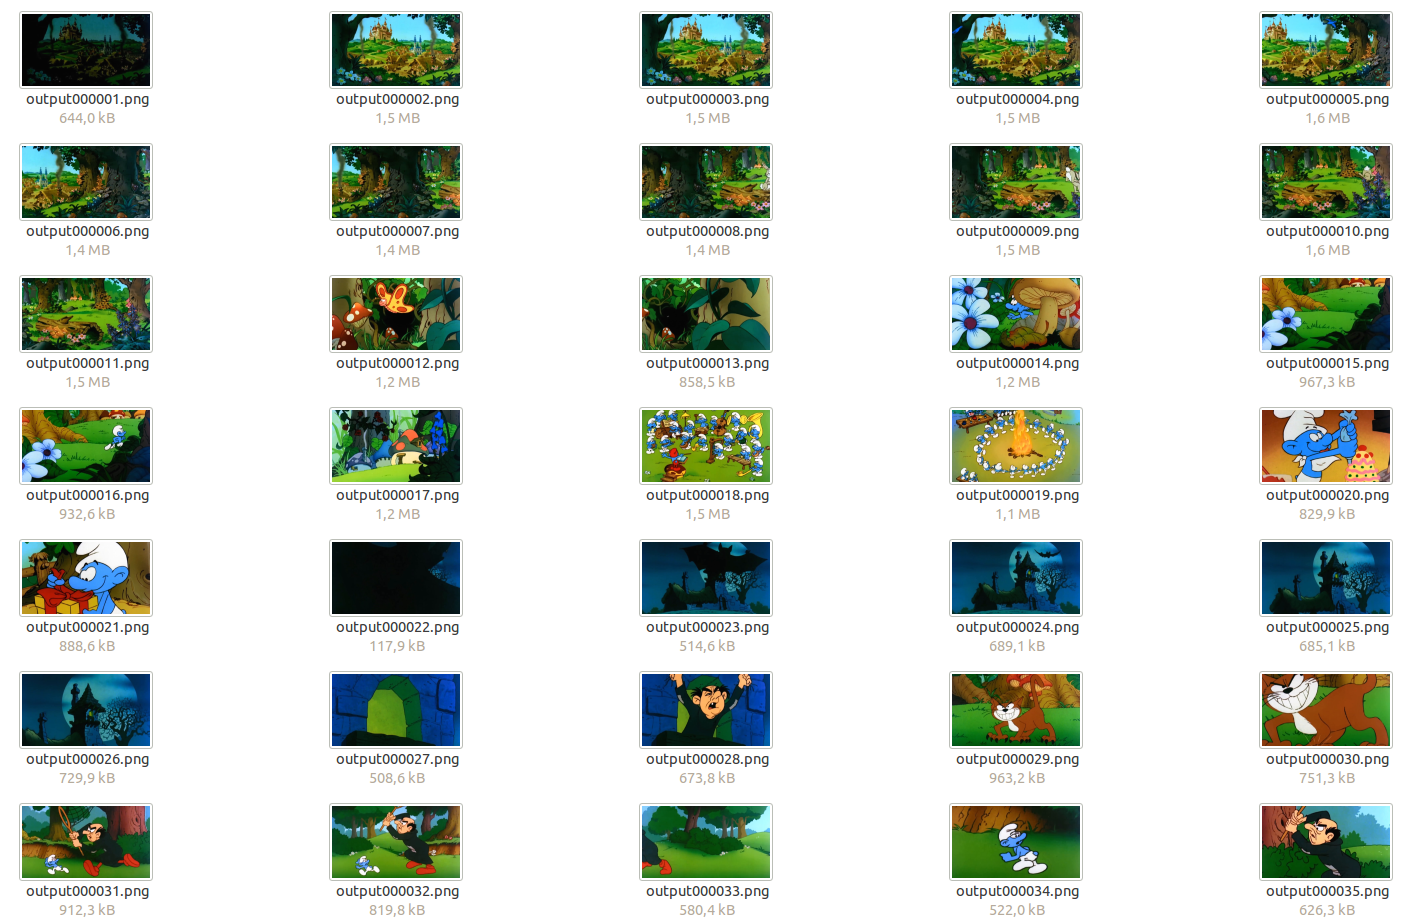 Extract frames as an image from video files using FFMPEG